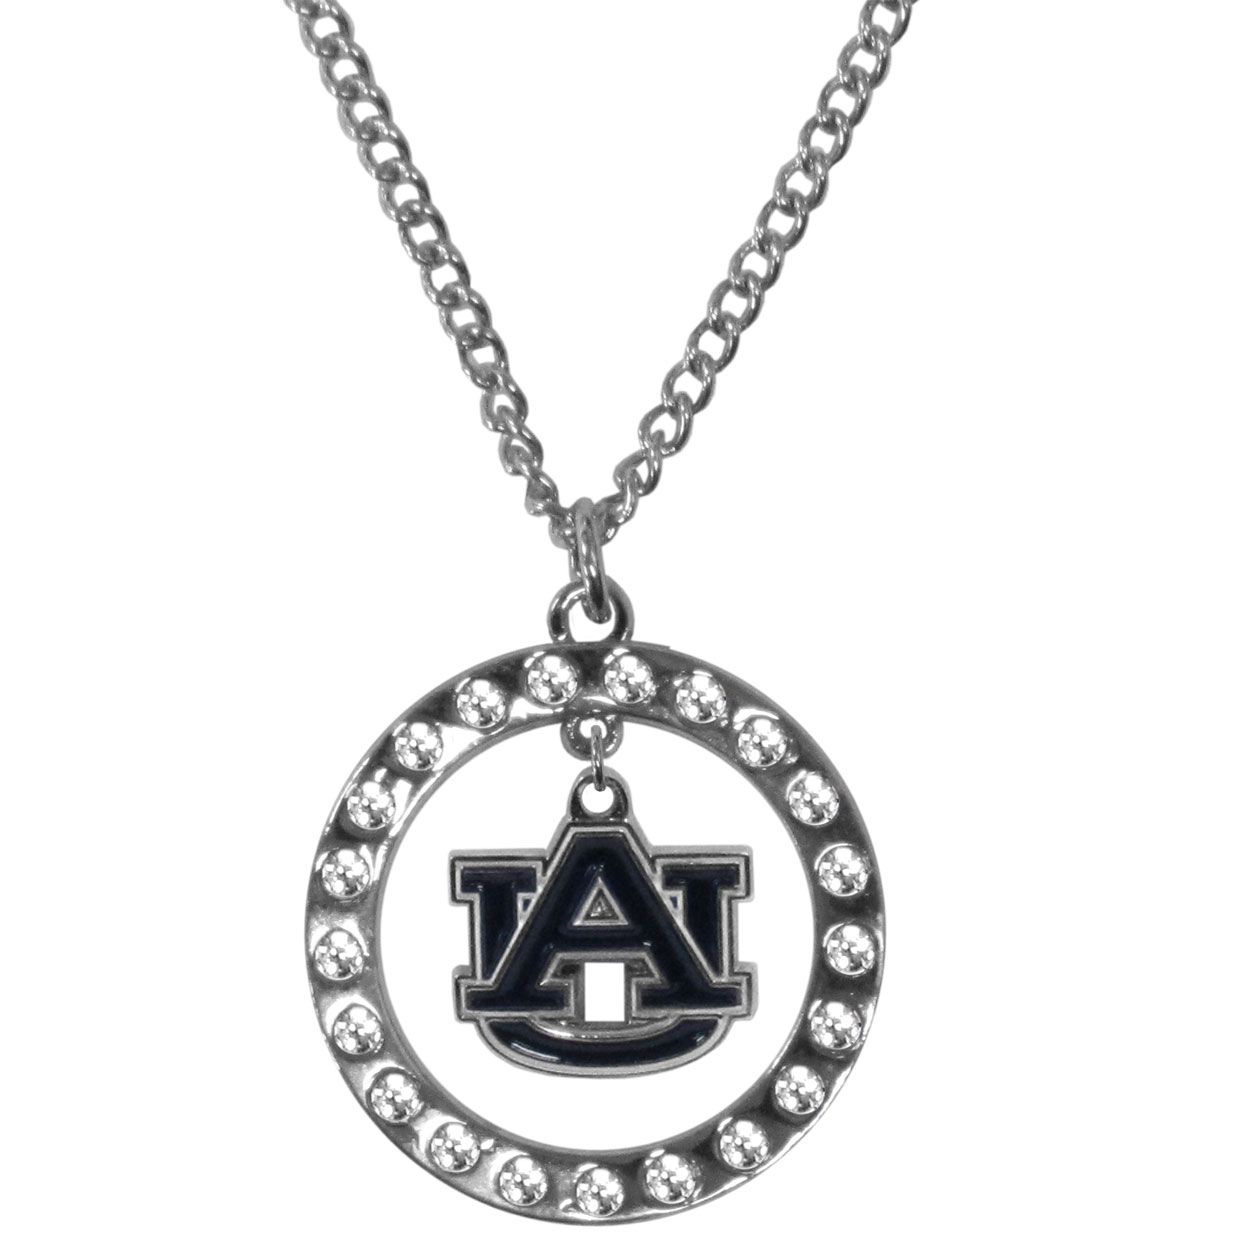 Auburn Tigers Rhinestone Hoop Necklaces - Our Auburn Tigers rhinestone hoop necklace comes on an 18 inch chain and features a hoop covered in rhinestones with a high polish chrome finish and a cast and enameled team charm dangling in the center.